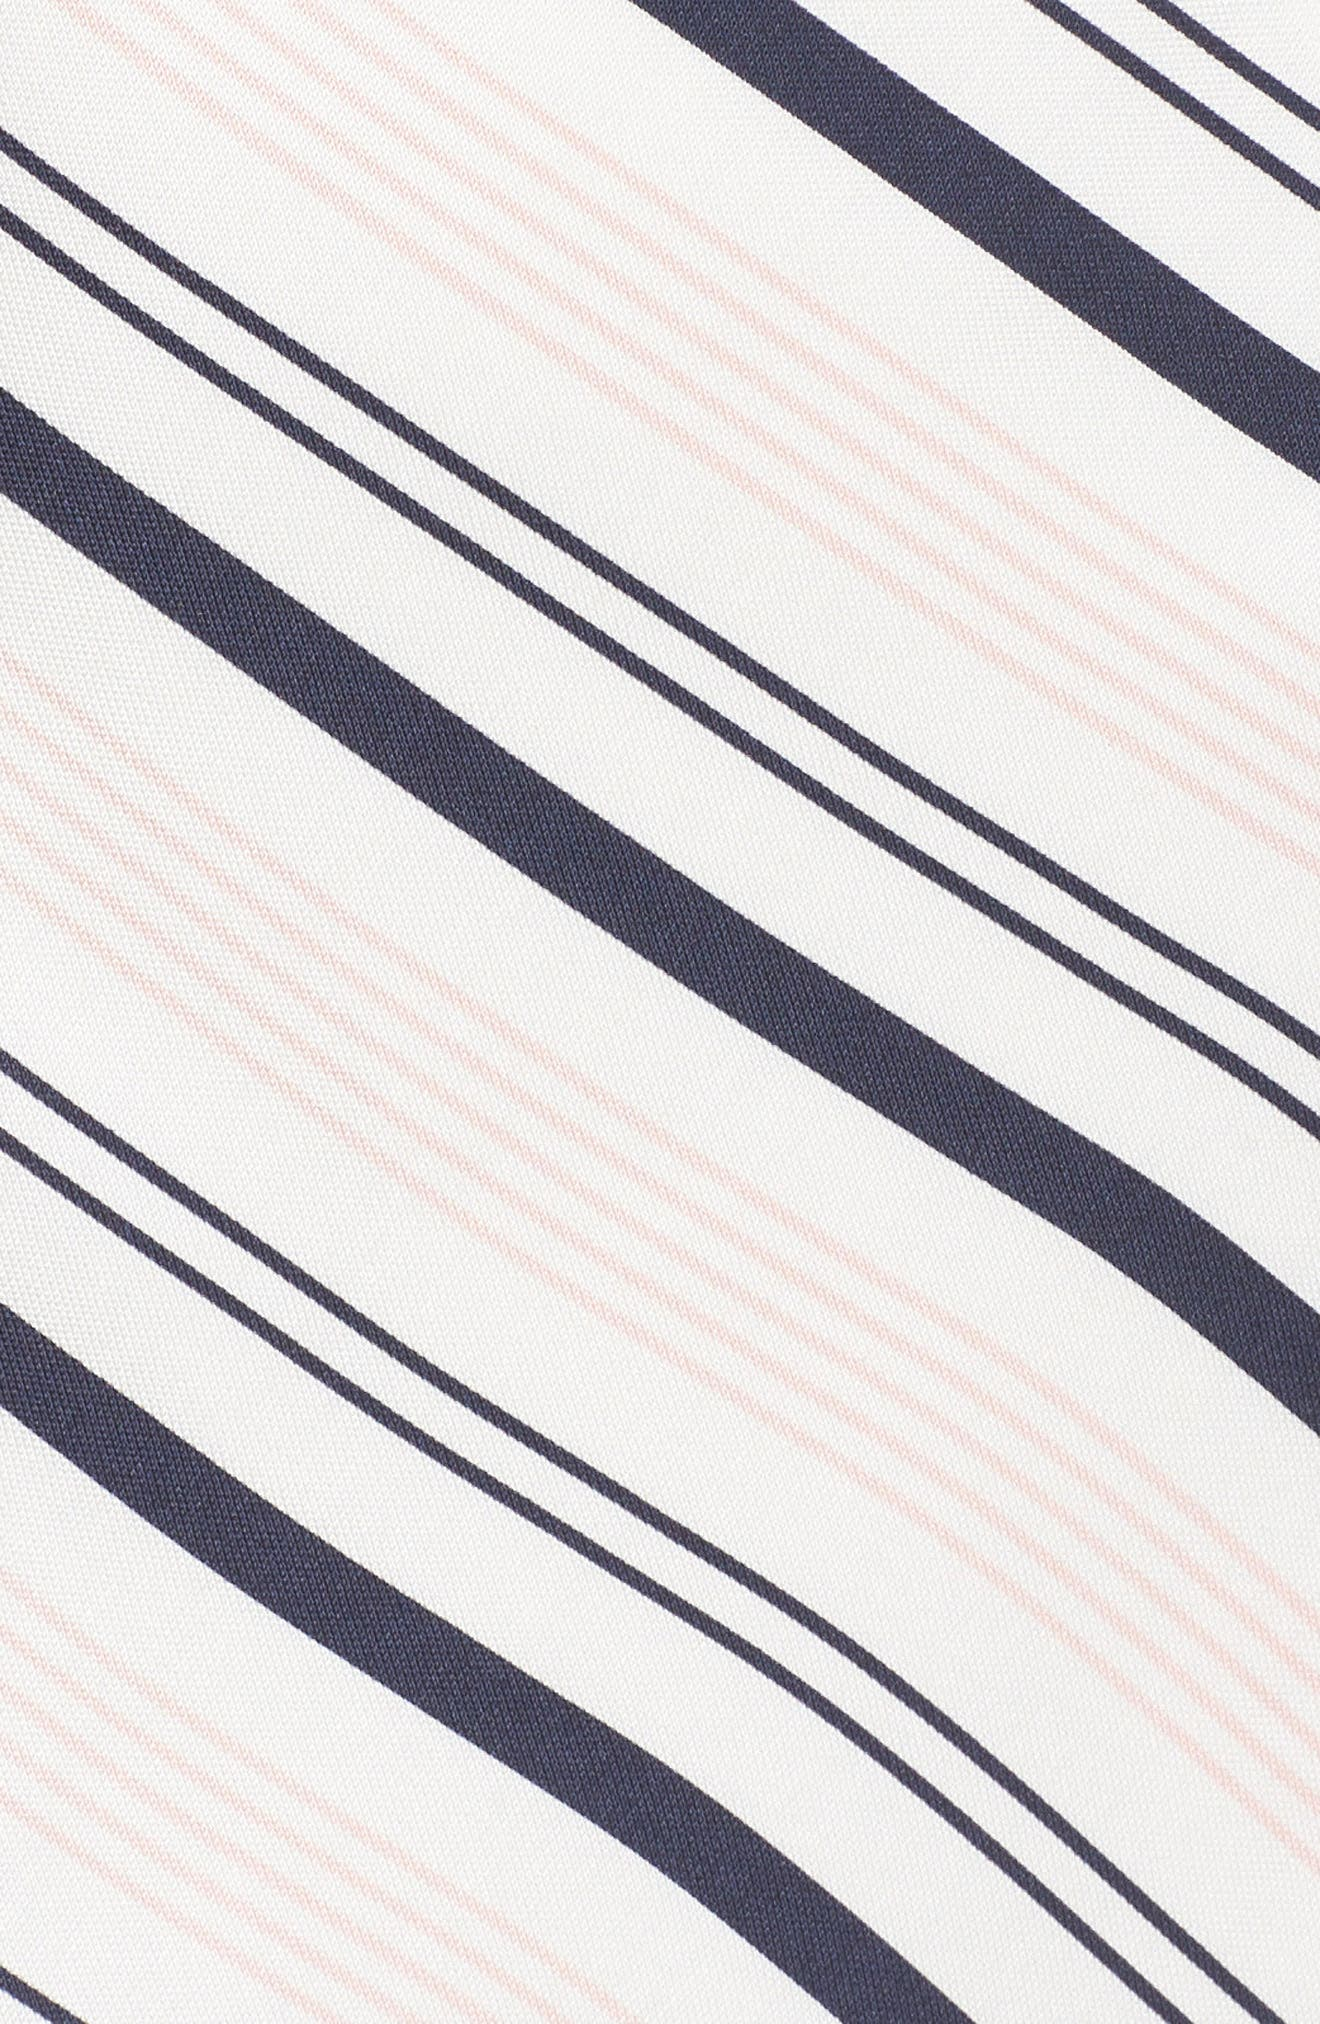 Mix Stripe Asymmetrical Dress,                             Alternate thumbnail 5, color,                             White/ Navy Miranda Stripe